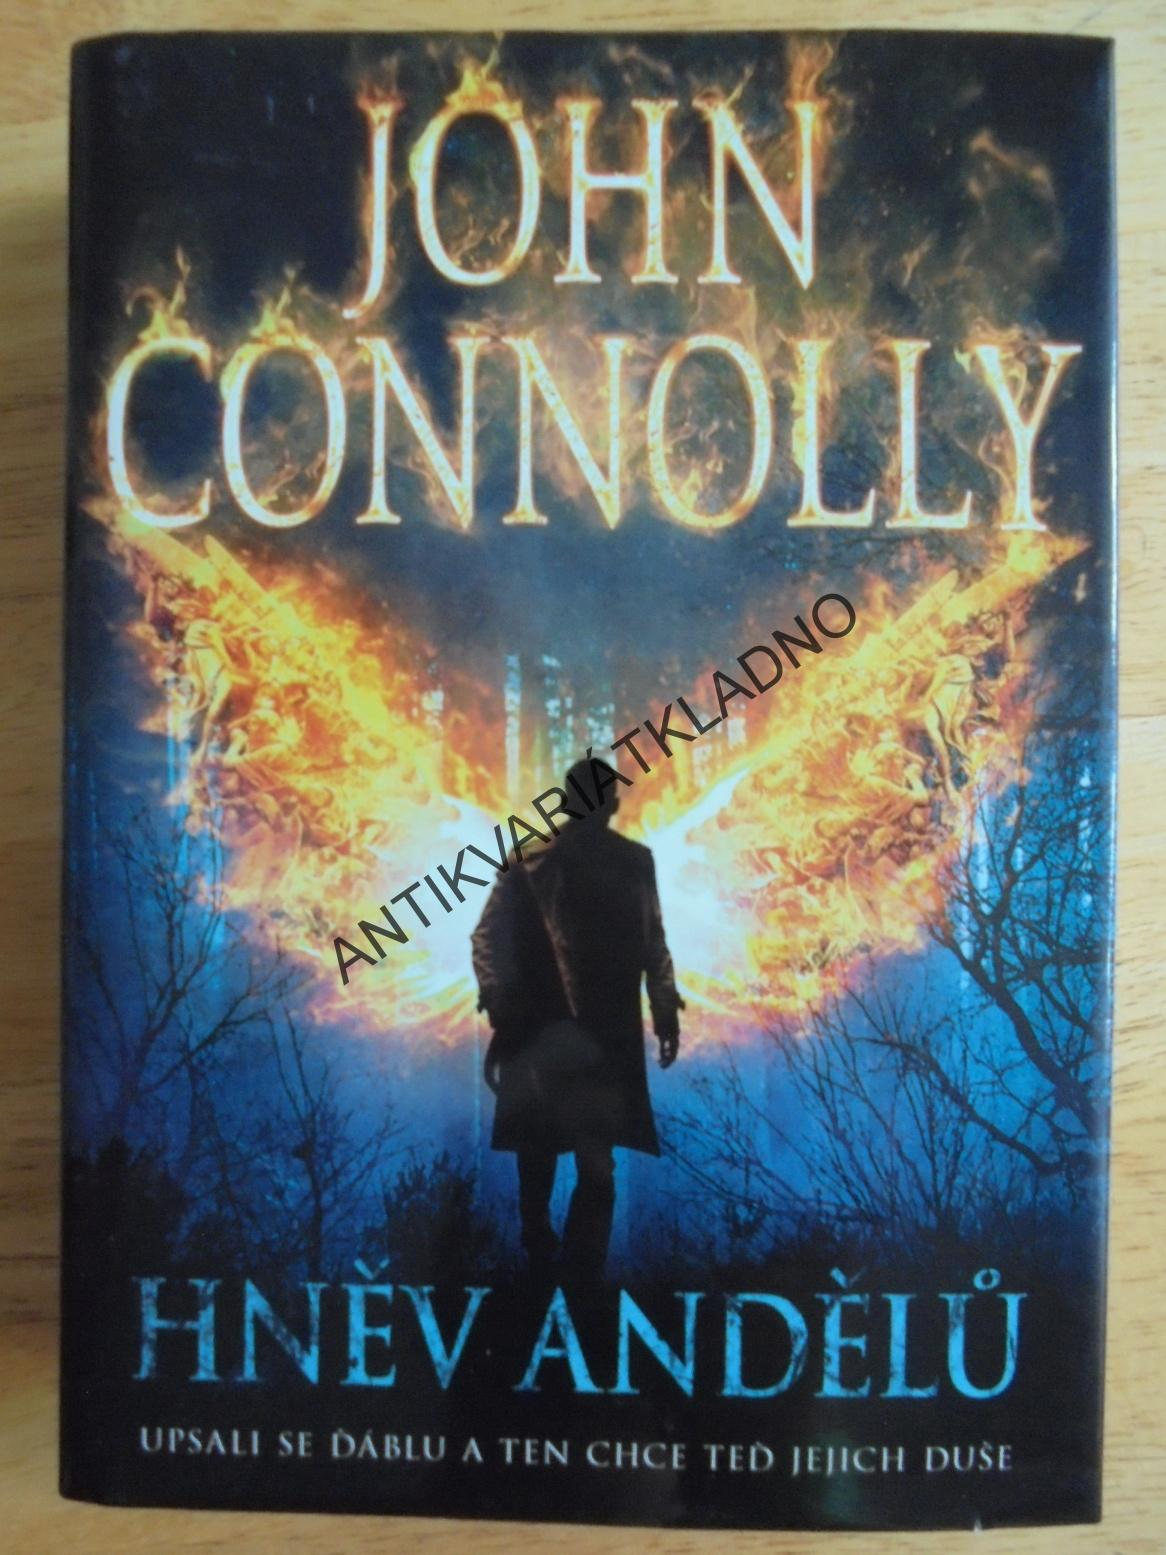 HNĚV ANDĚLŮ, JOHN CONNOLLY,